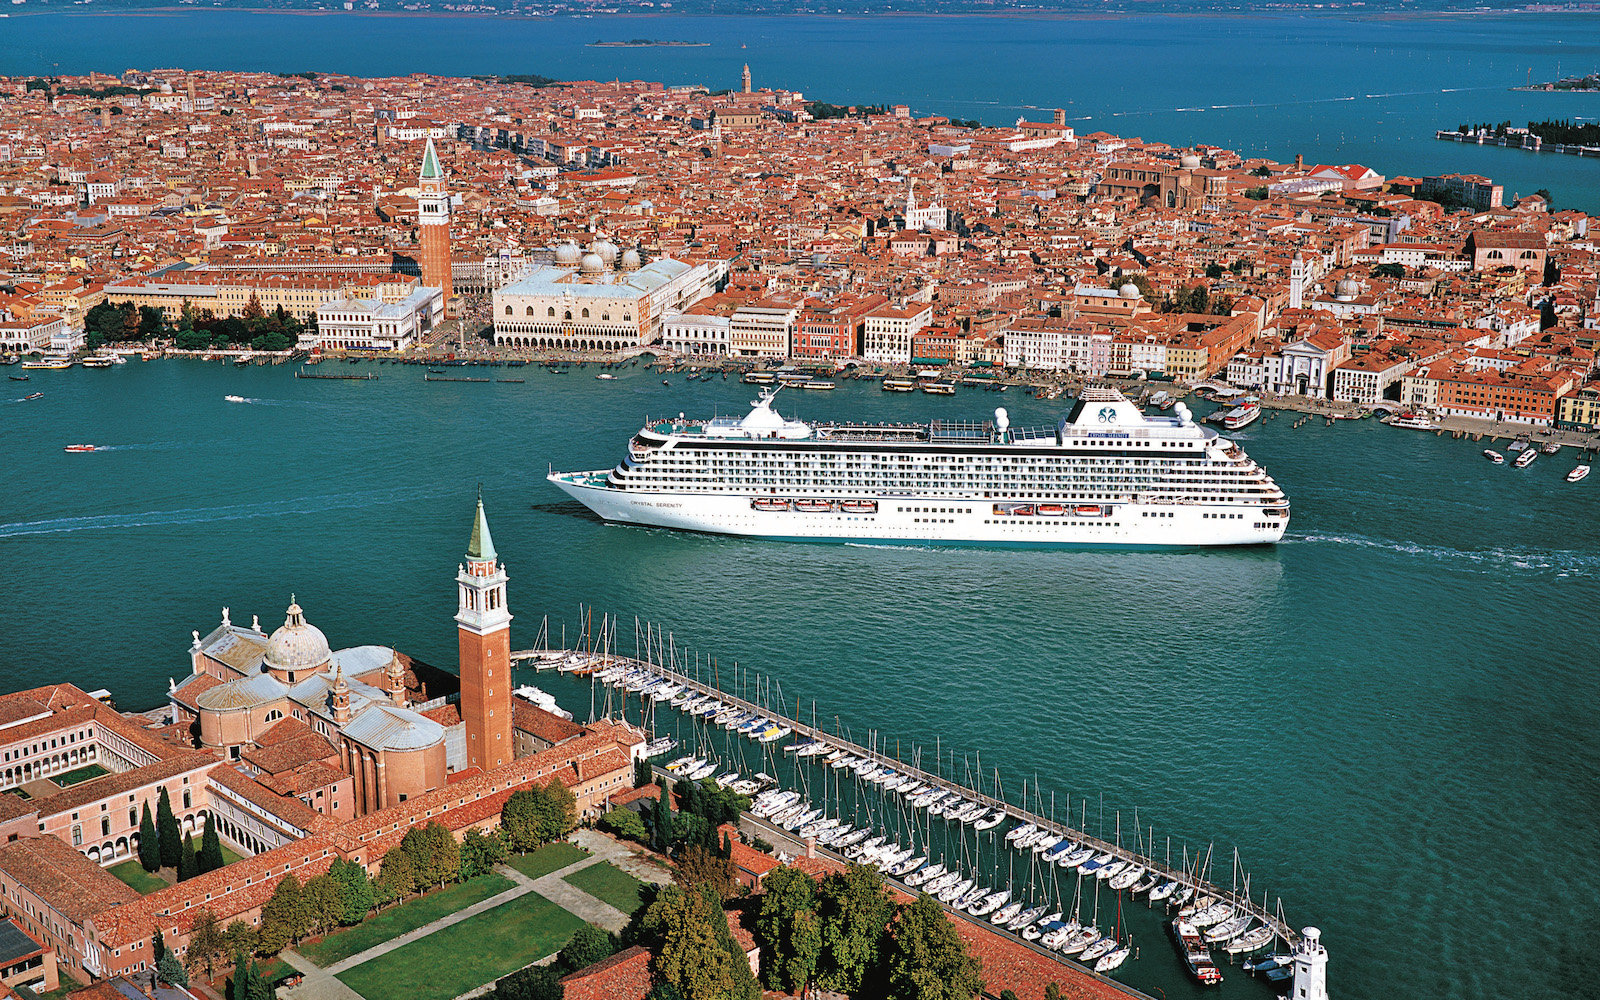 Crystal Cruises Serenity ship in Venice, Italy